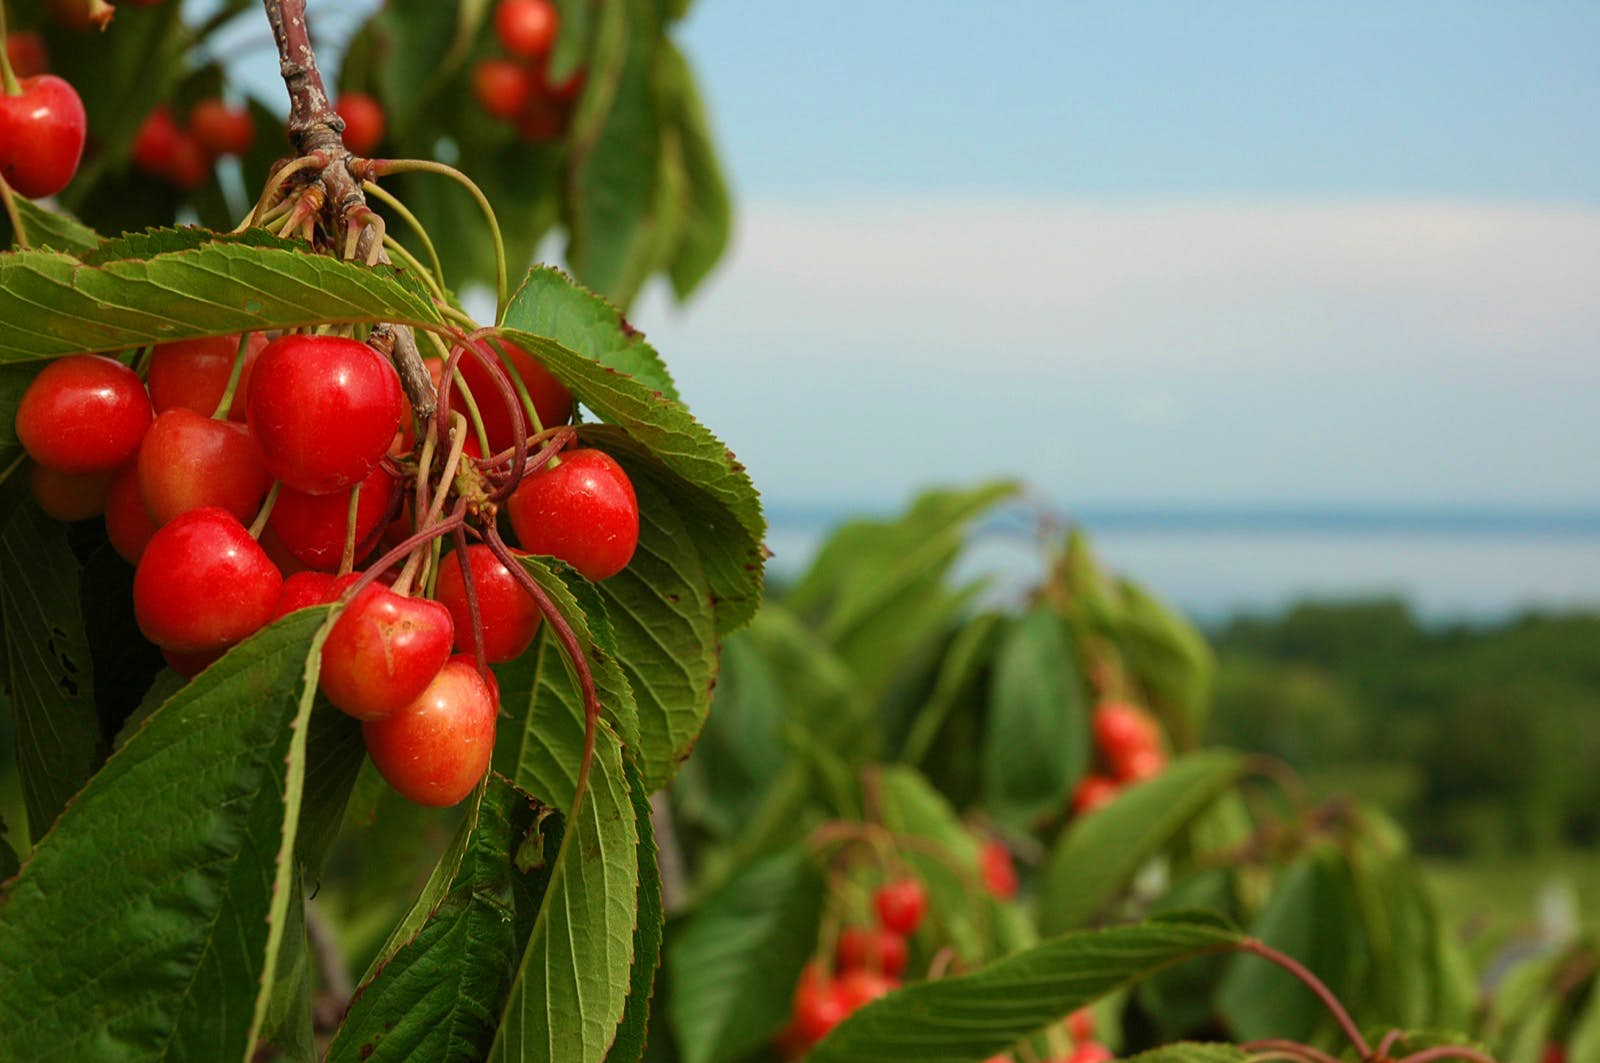 A close up shot of bright red cherries growing on a tree with a vast lake in the background